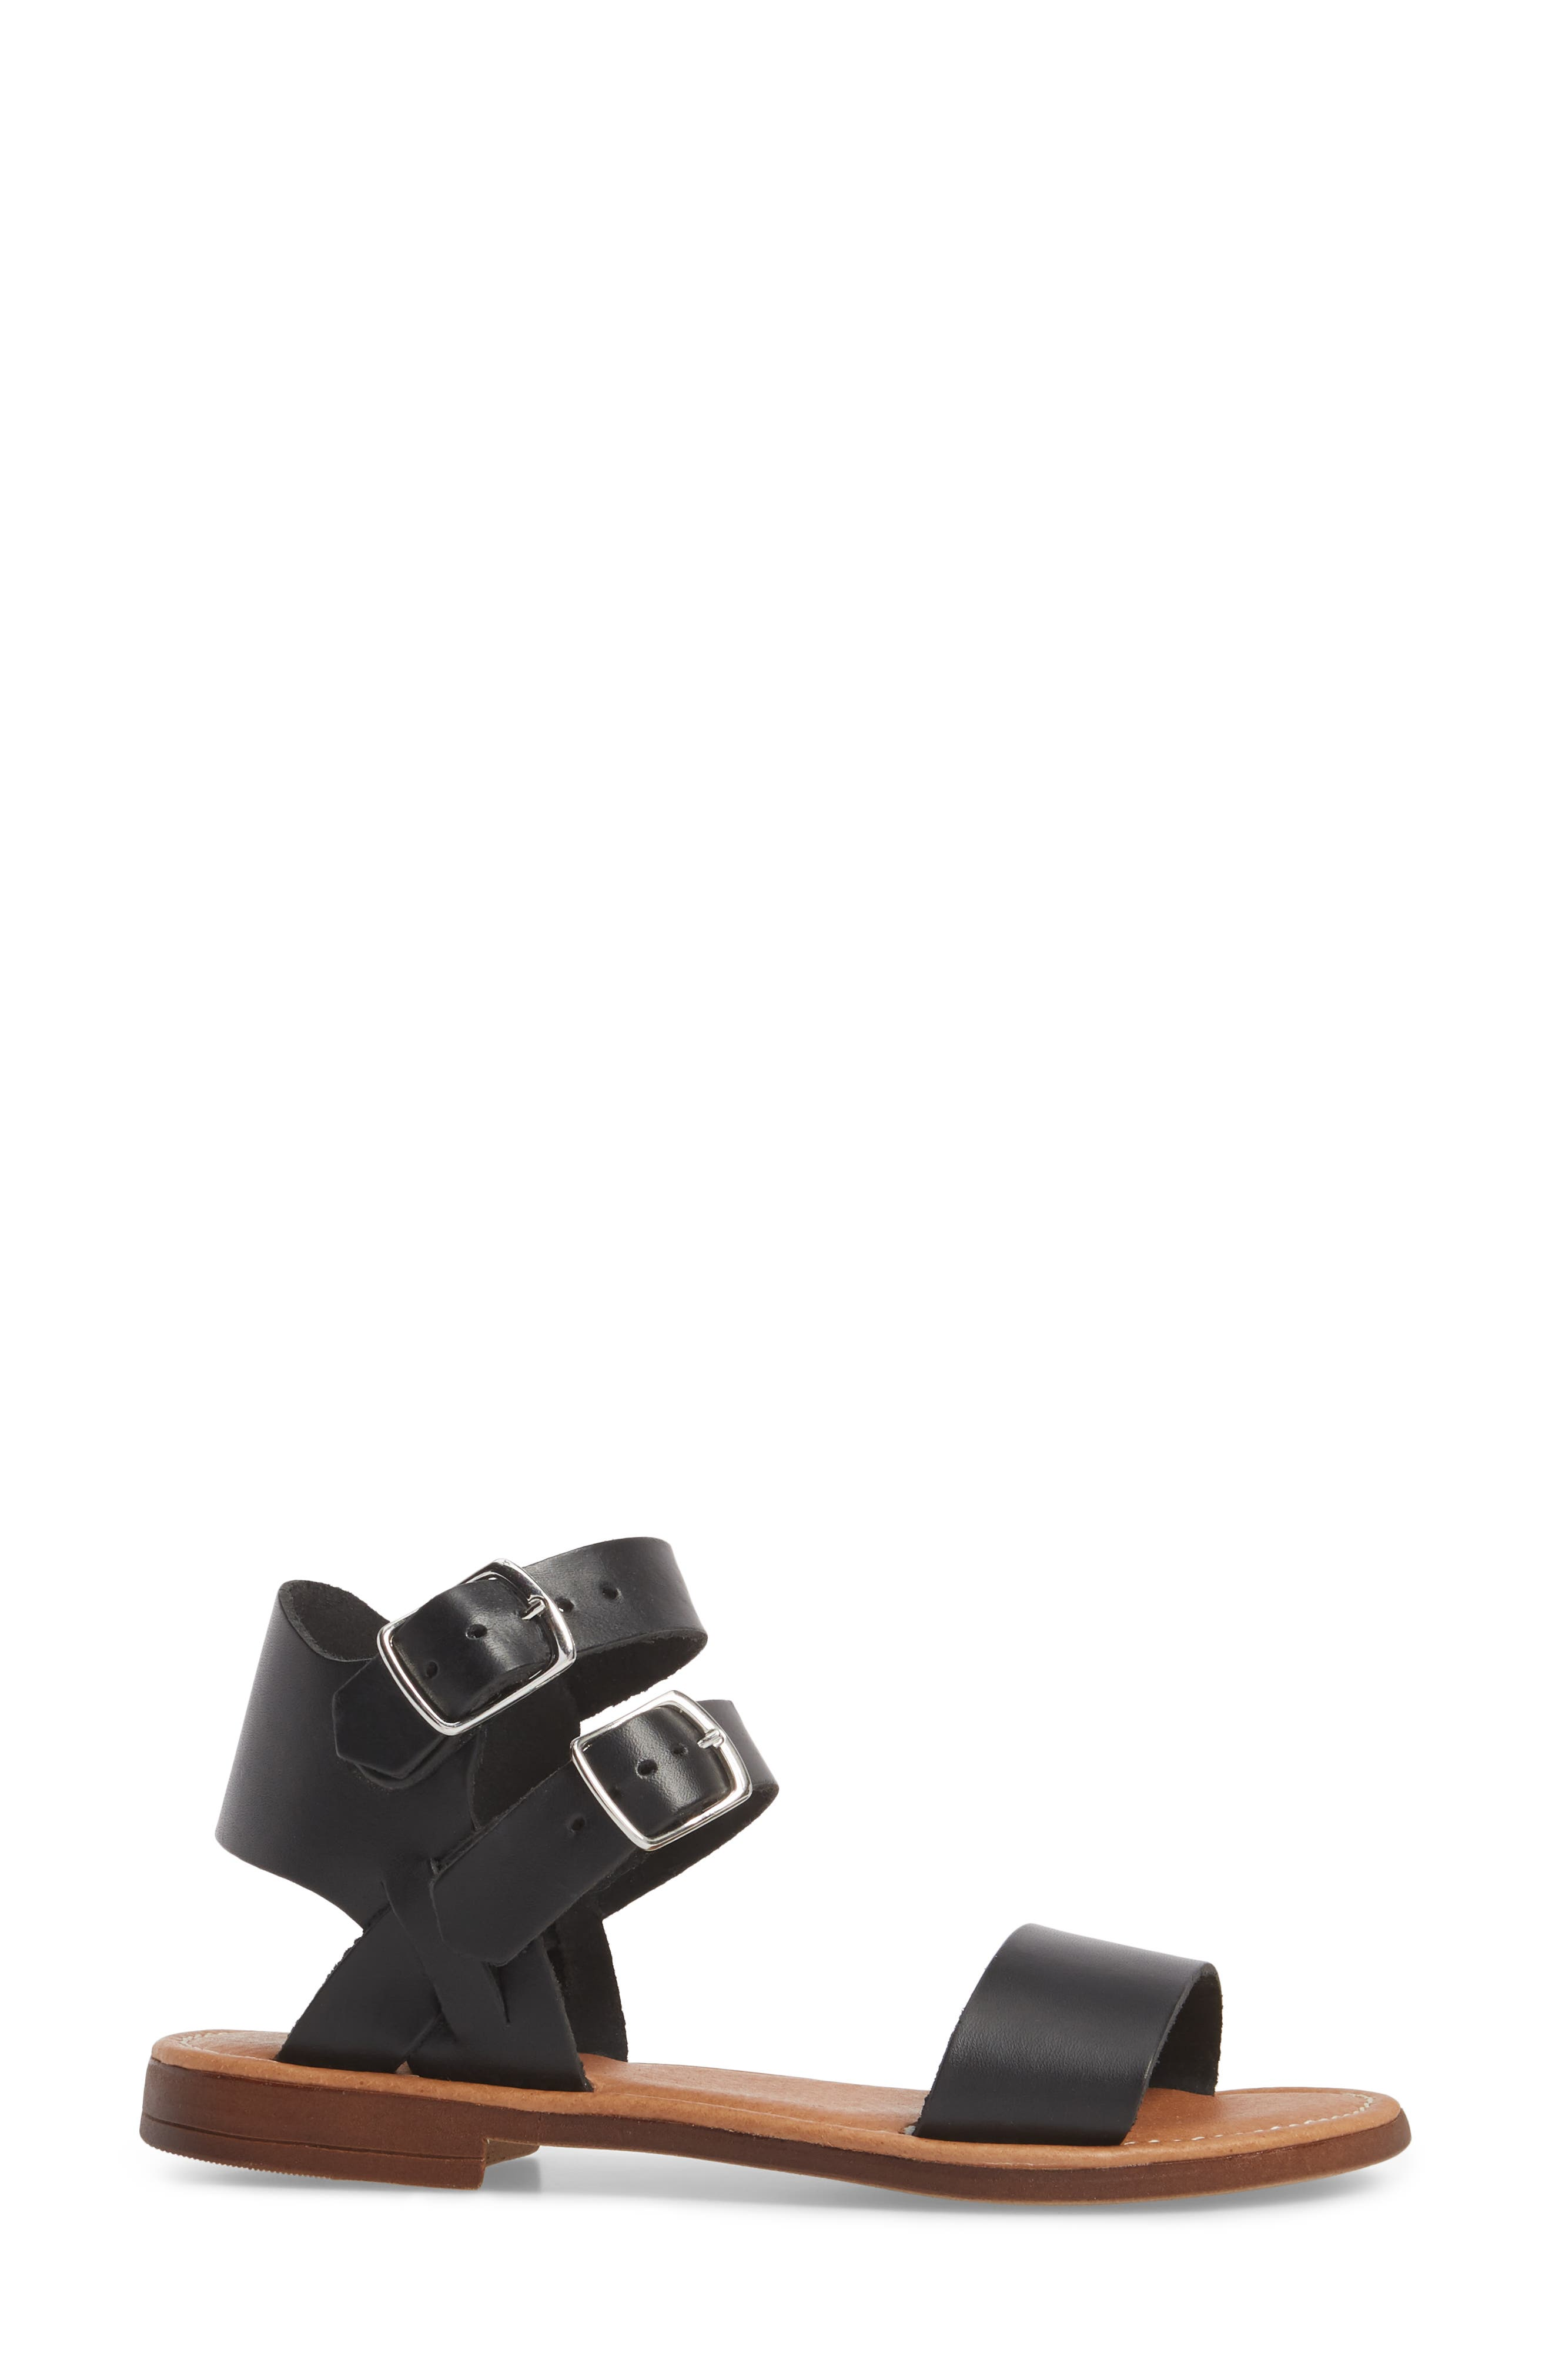 Ida Mid Top Sandal,                             Alternate thumbnail 3, color,                             BLACK VACCHETTA LEATHER